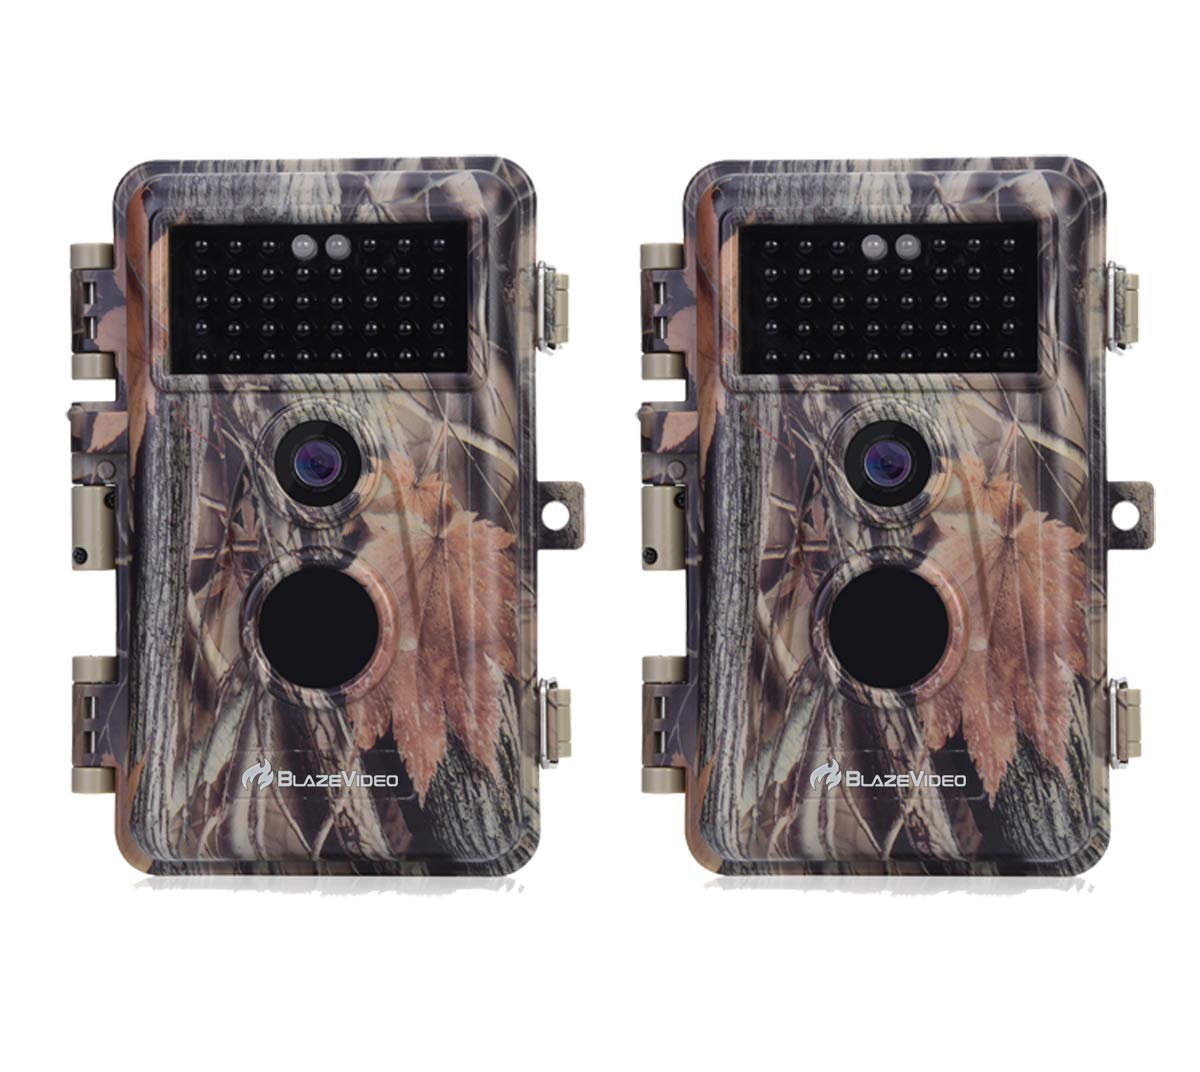 [2020 Upgrade] 2-Pack Game Trail Hunting Deer Cameras 16MP Photo Full HD 1920x1080P Video with Night Vision No Glow Motion Activated 0.6S Trigger Waterproof and Password Protected Photo & Video Model